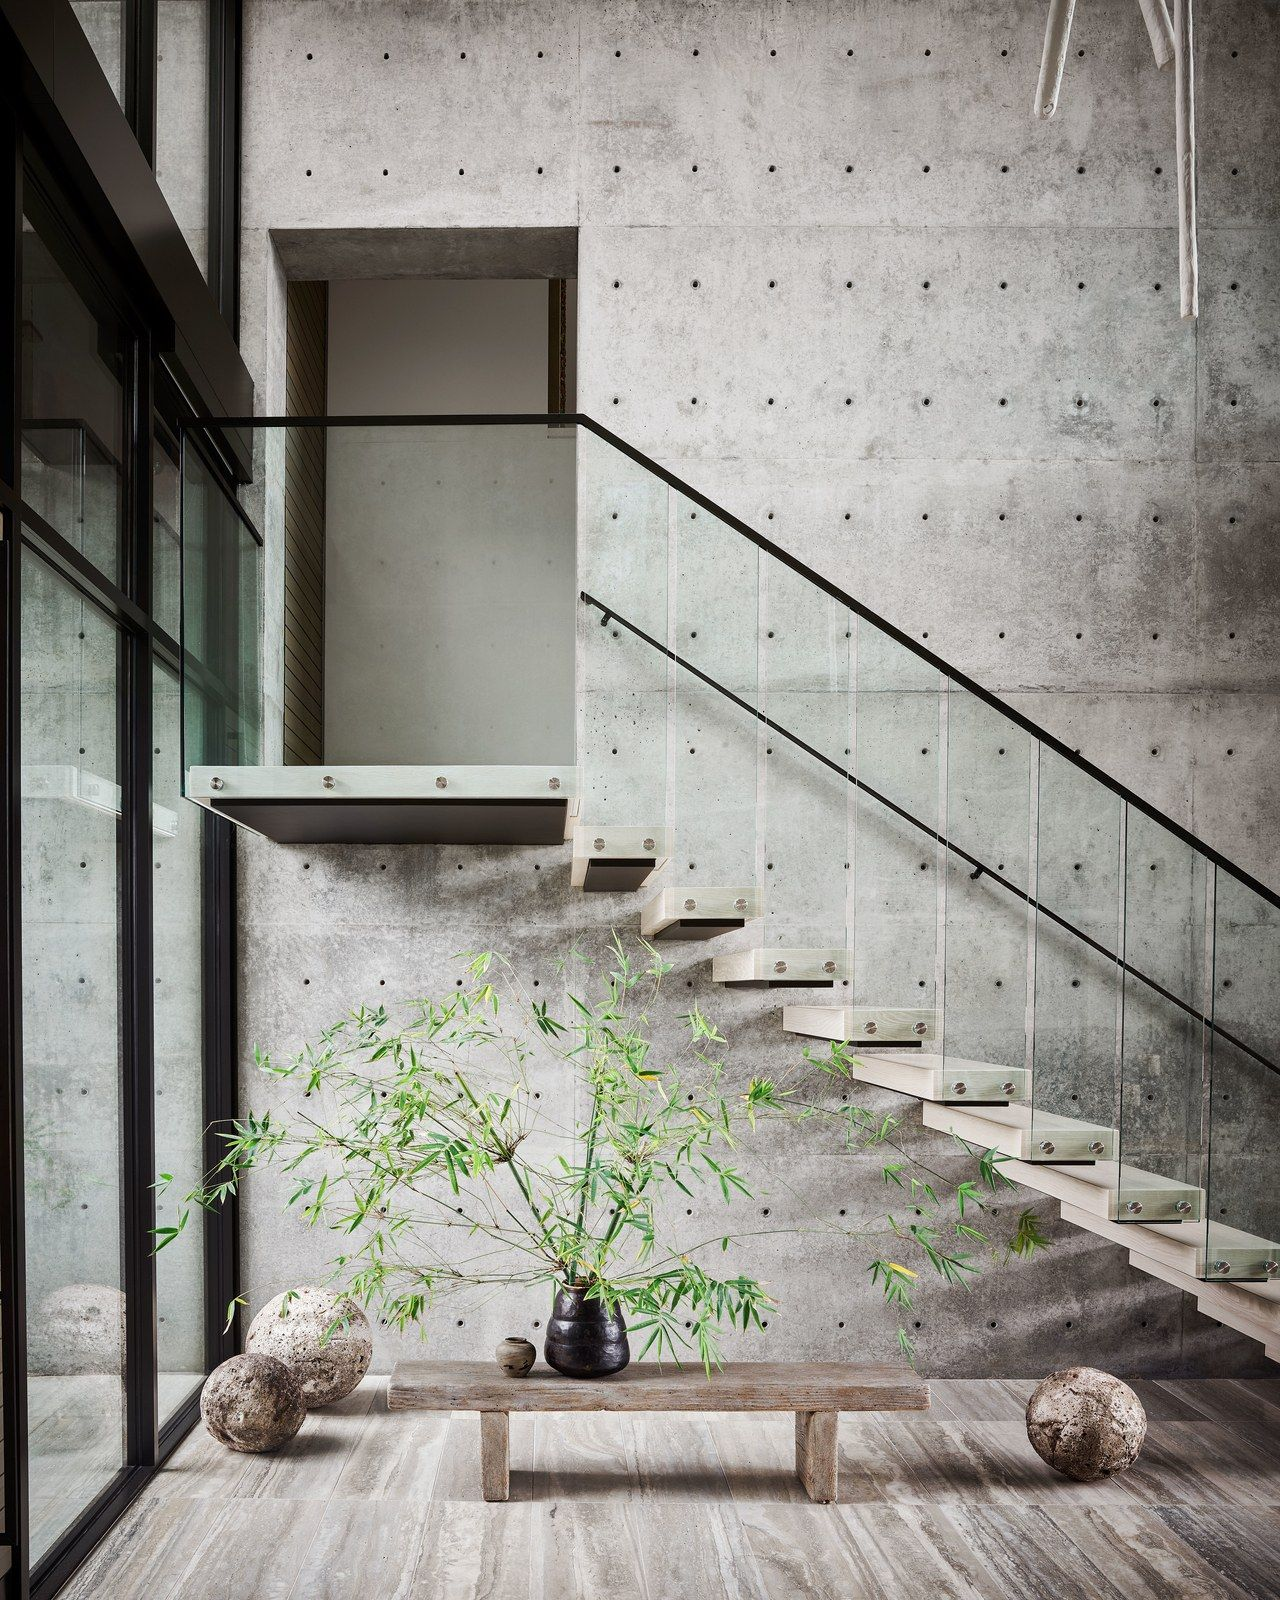 Step Inside Maria Sharapova S Sun Drenched L A Home With Images Minimalist Architecture Celebrity Houses Concrete Interiors